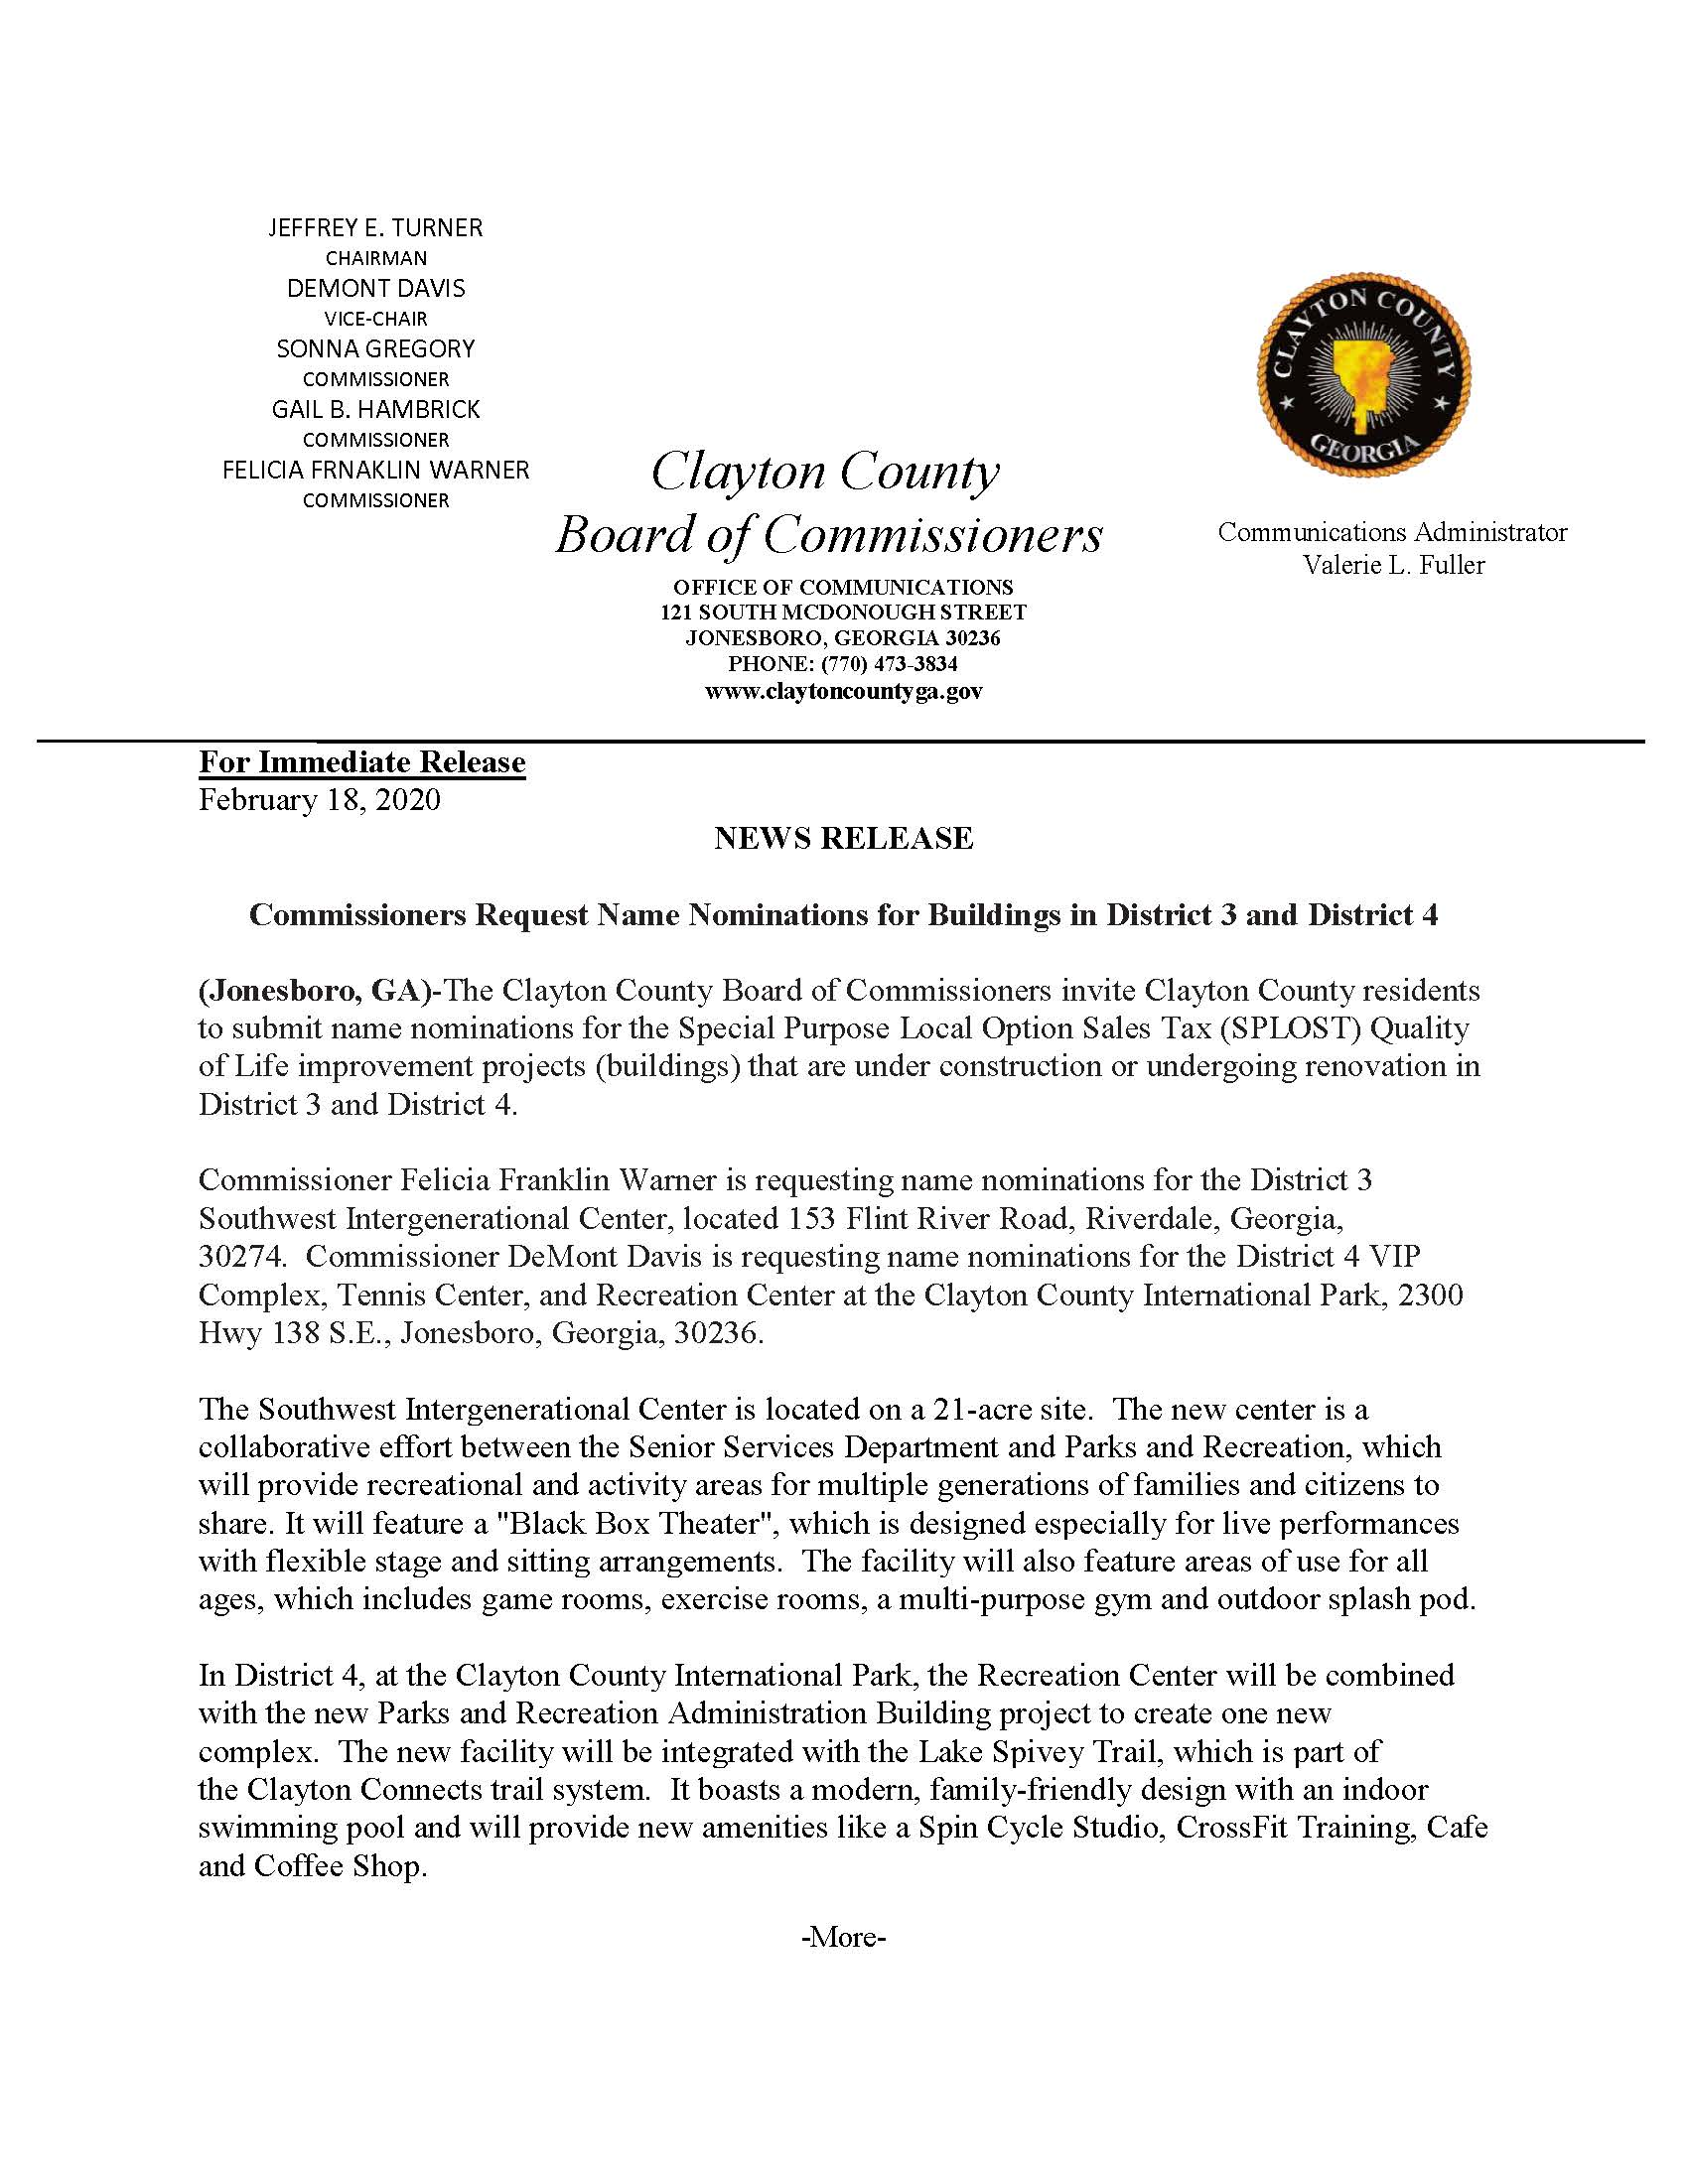 Commissioners Request Name Nominations for Buildings in District 3 and District 4